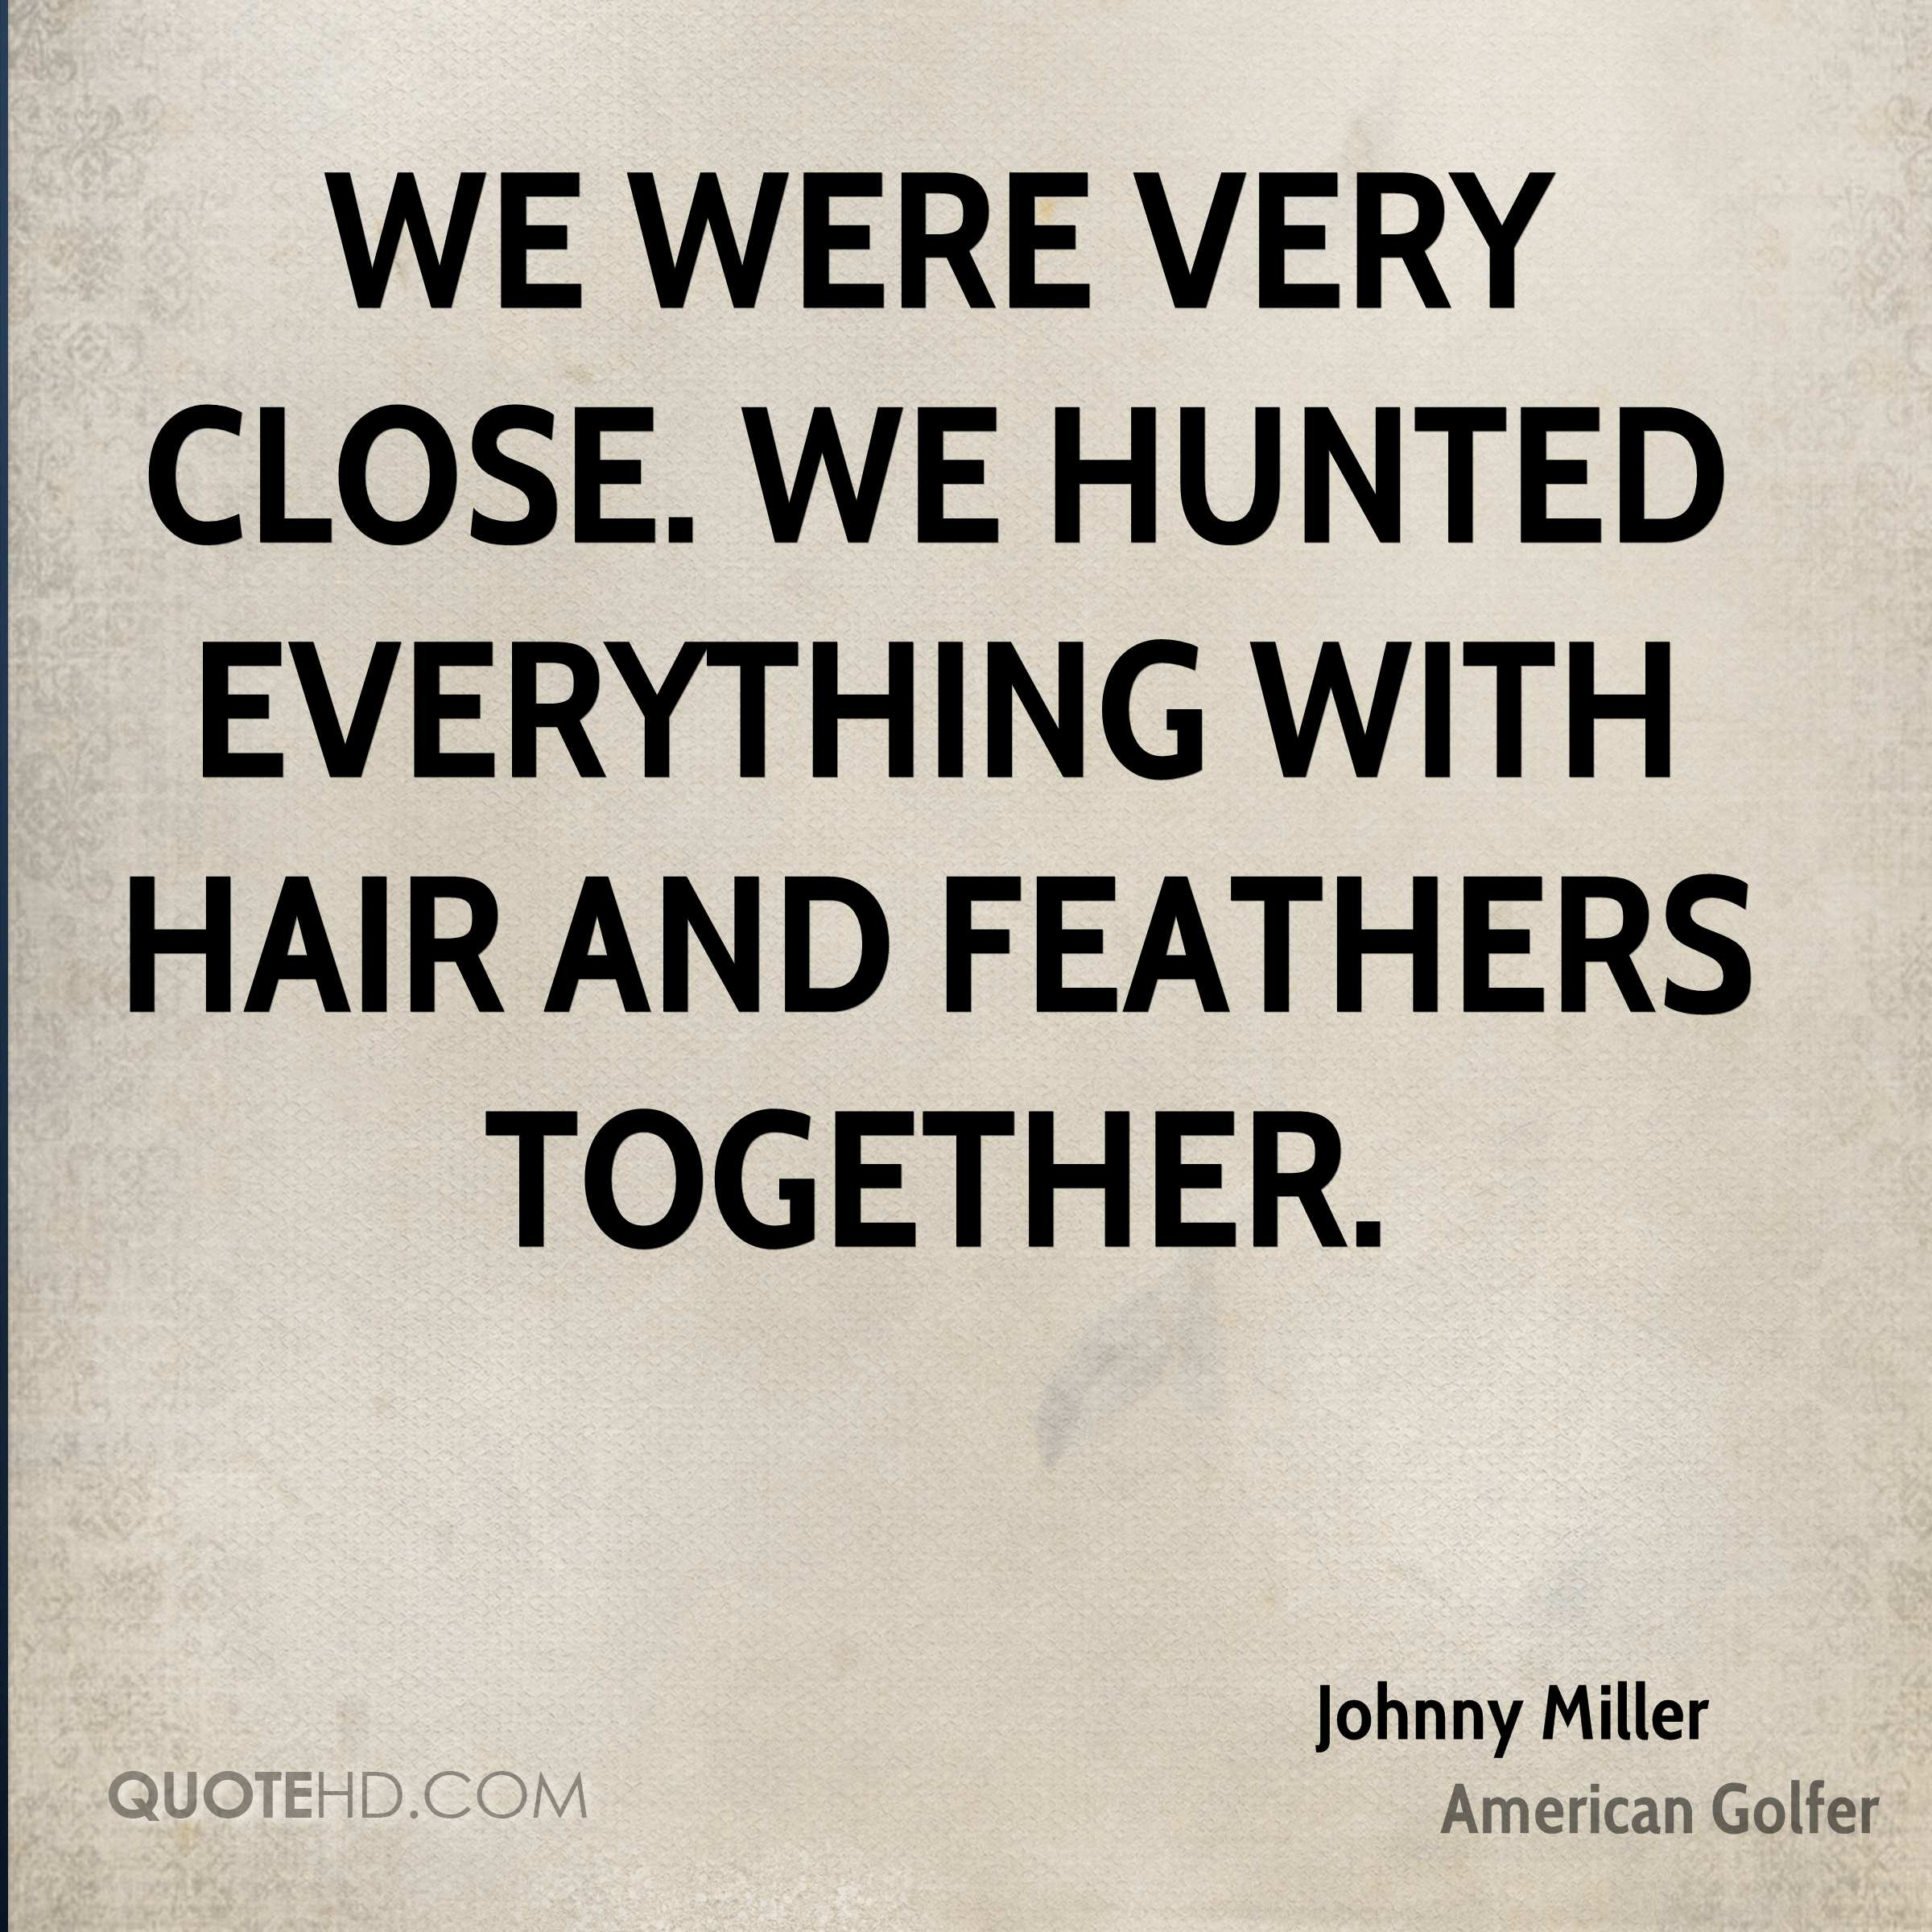 We were very close. We hunted everything with hair and feathers together.